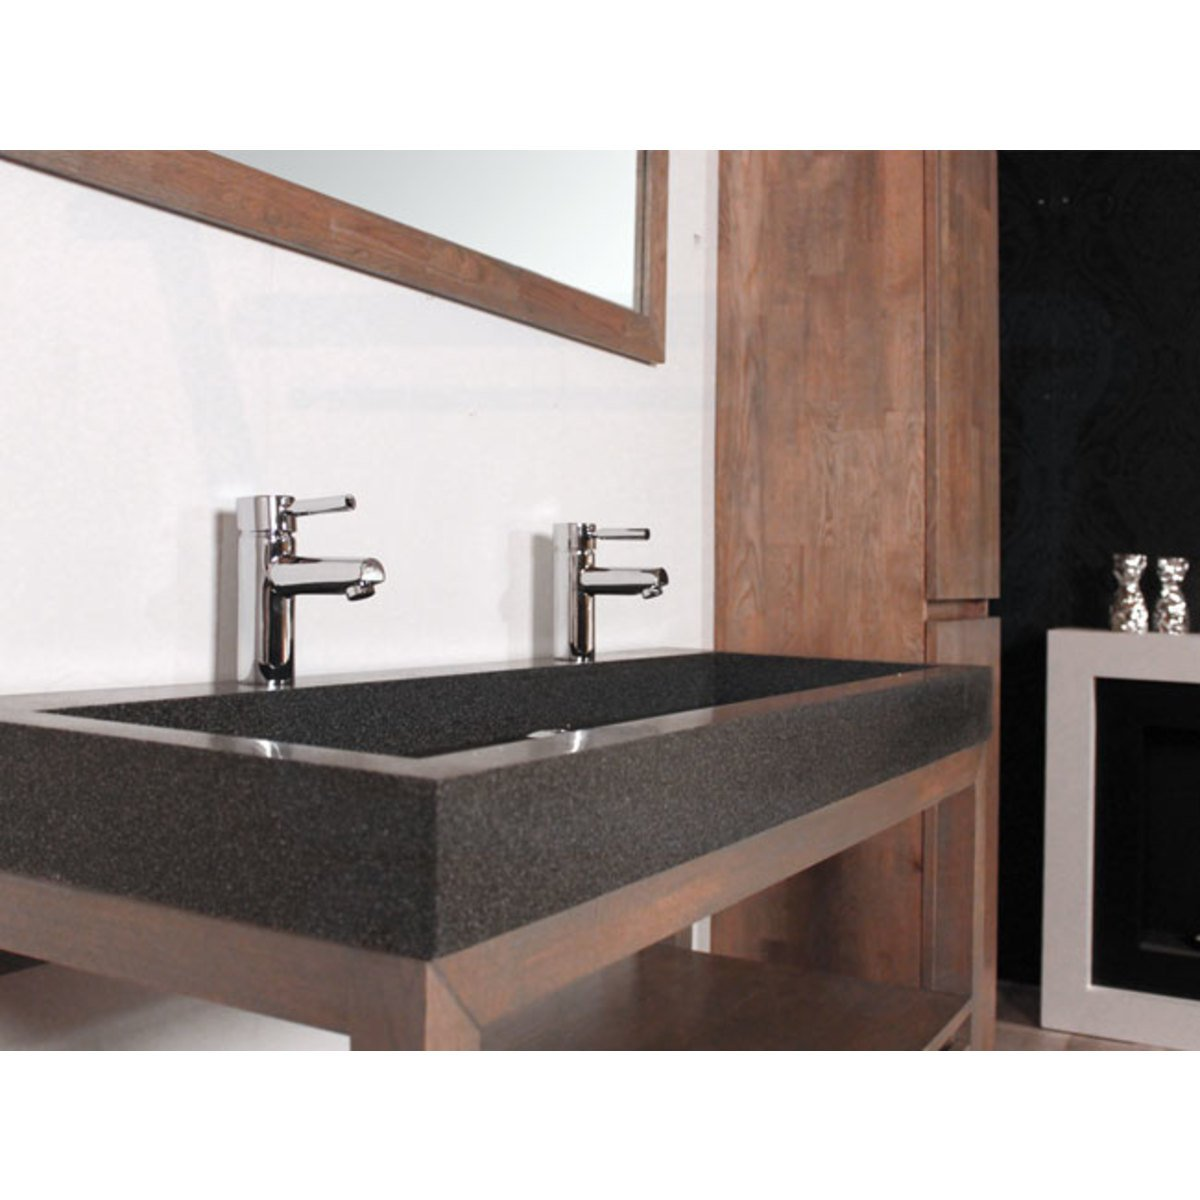 saniclass natural wood meuble salle de bain avec miroir. Black Bedroom Furniture Sets. Home Design Ideas